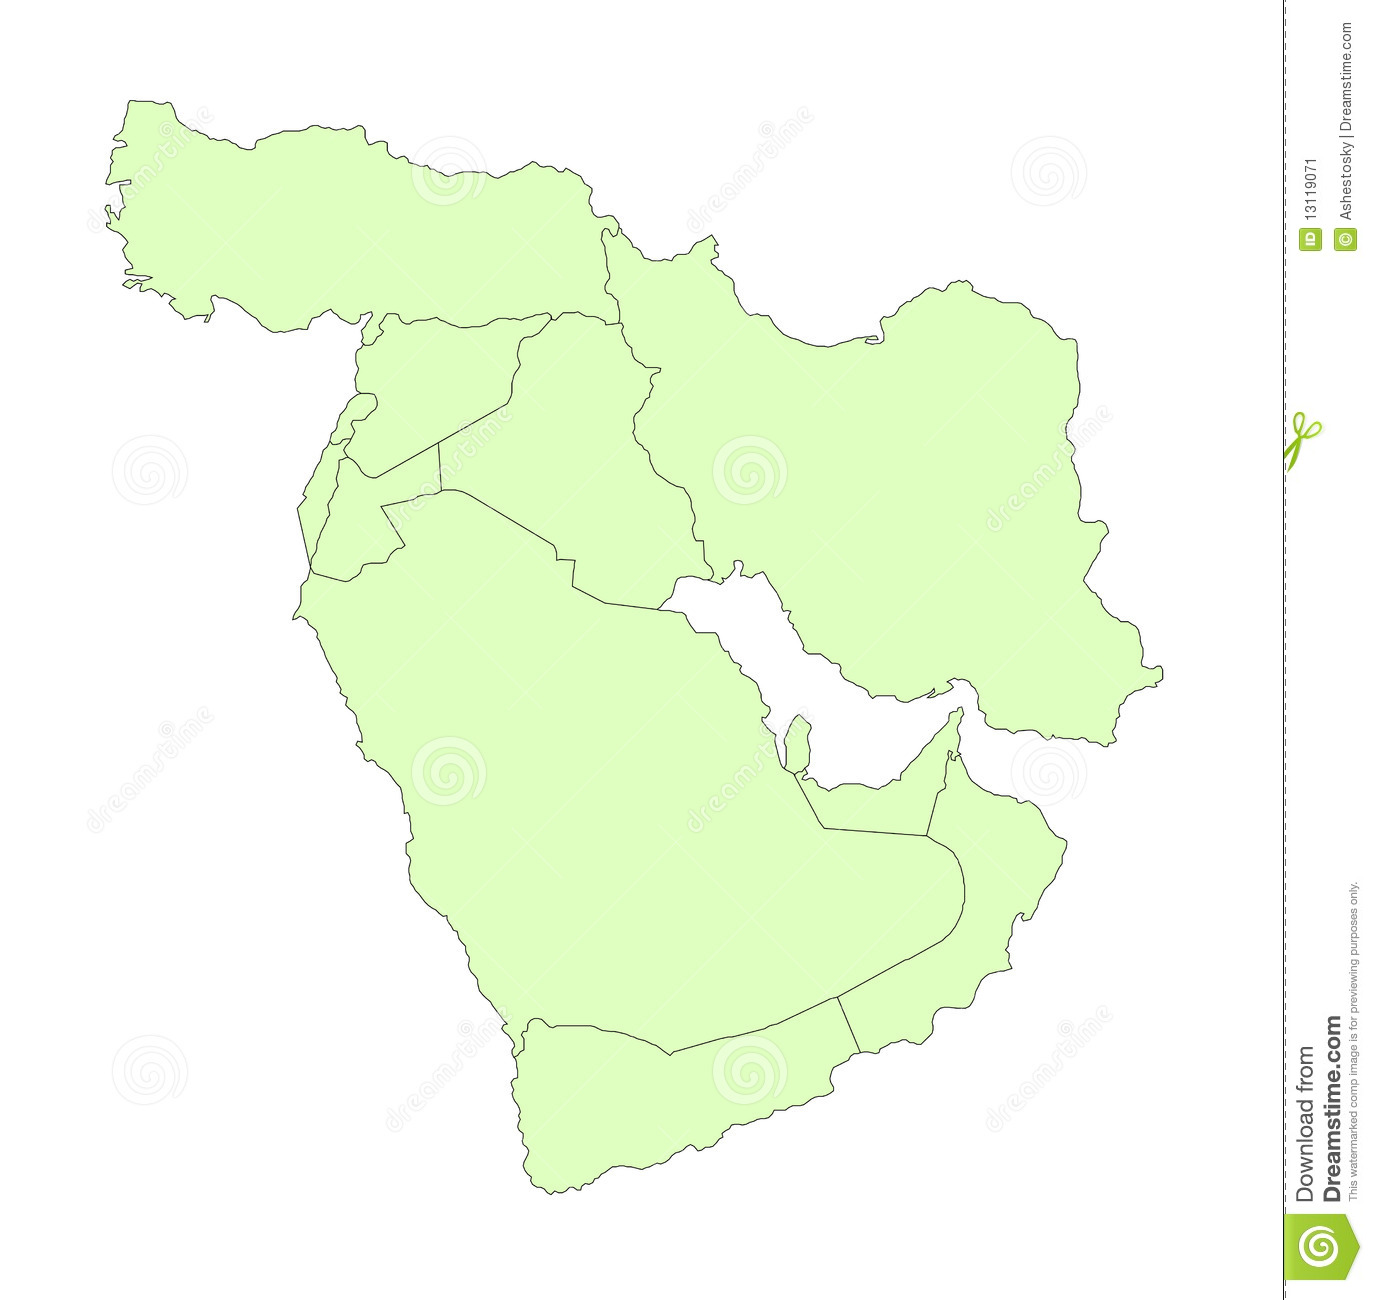 Middle East Outline Map Stock Image Image - Middle east outline map